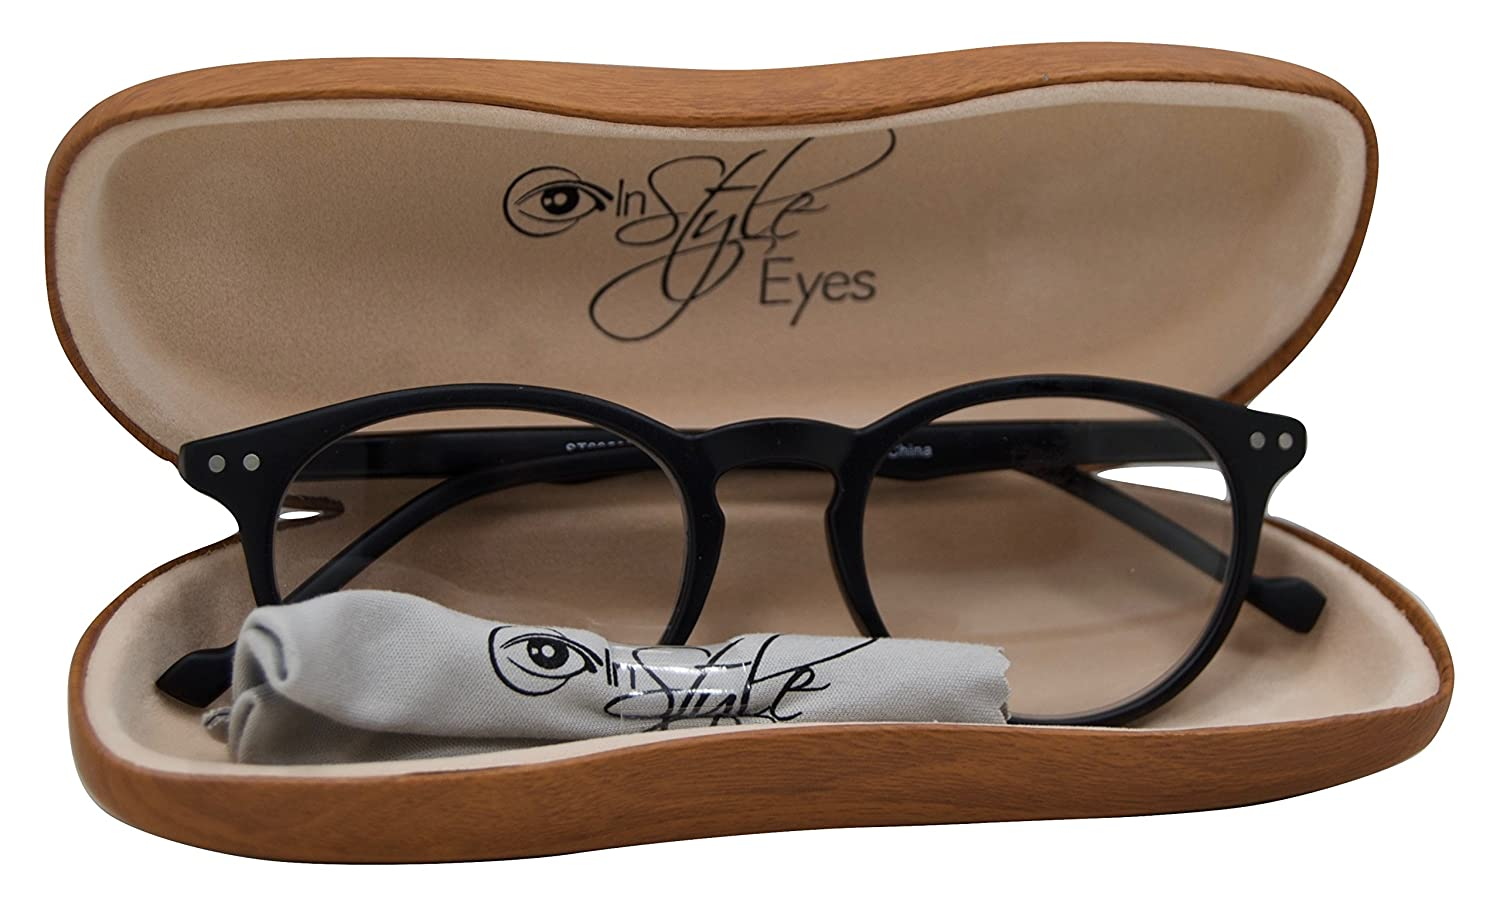 92f33a0971a Amazon.com  In Style Eyes Flexible Readers